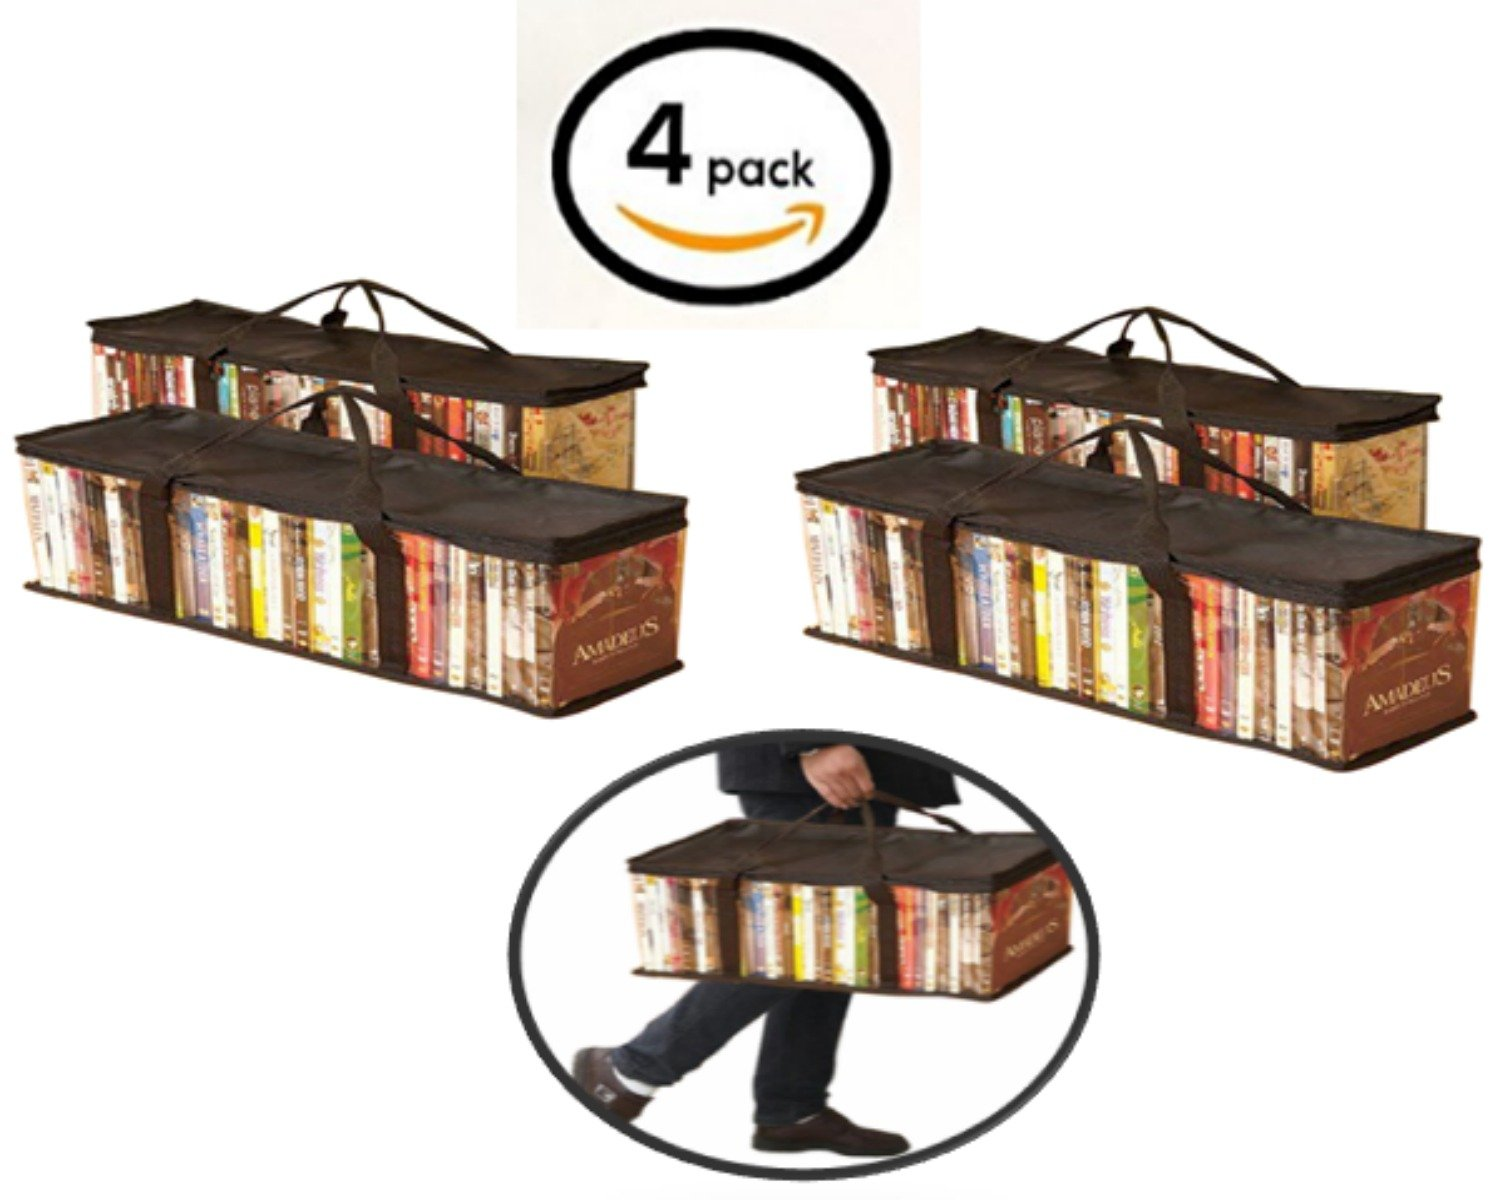 Globalis Portable DVD Storage Bag, 4-Pack Stores 40 DVDs Each Bag